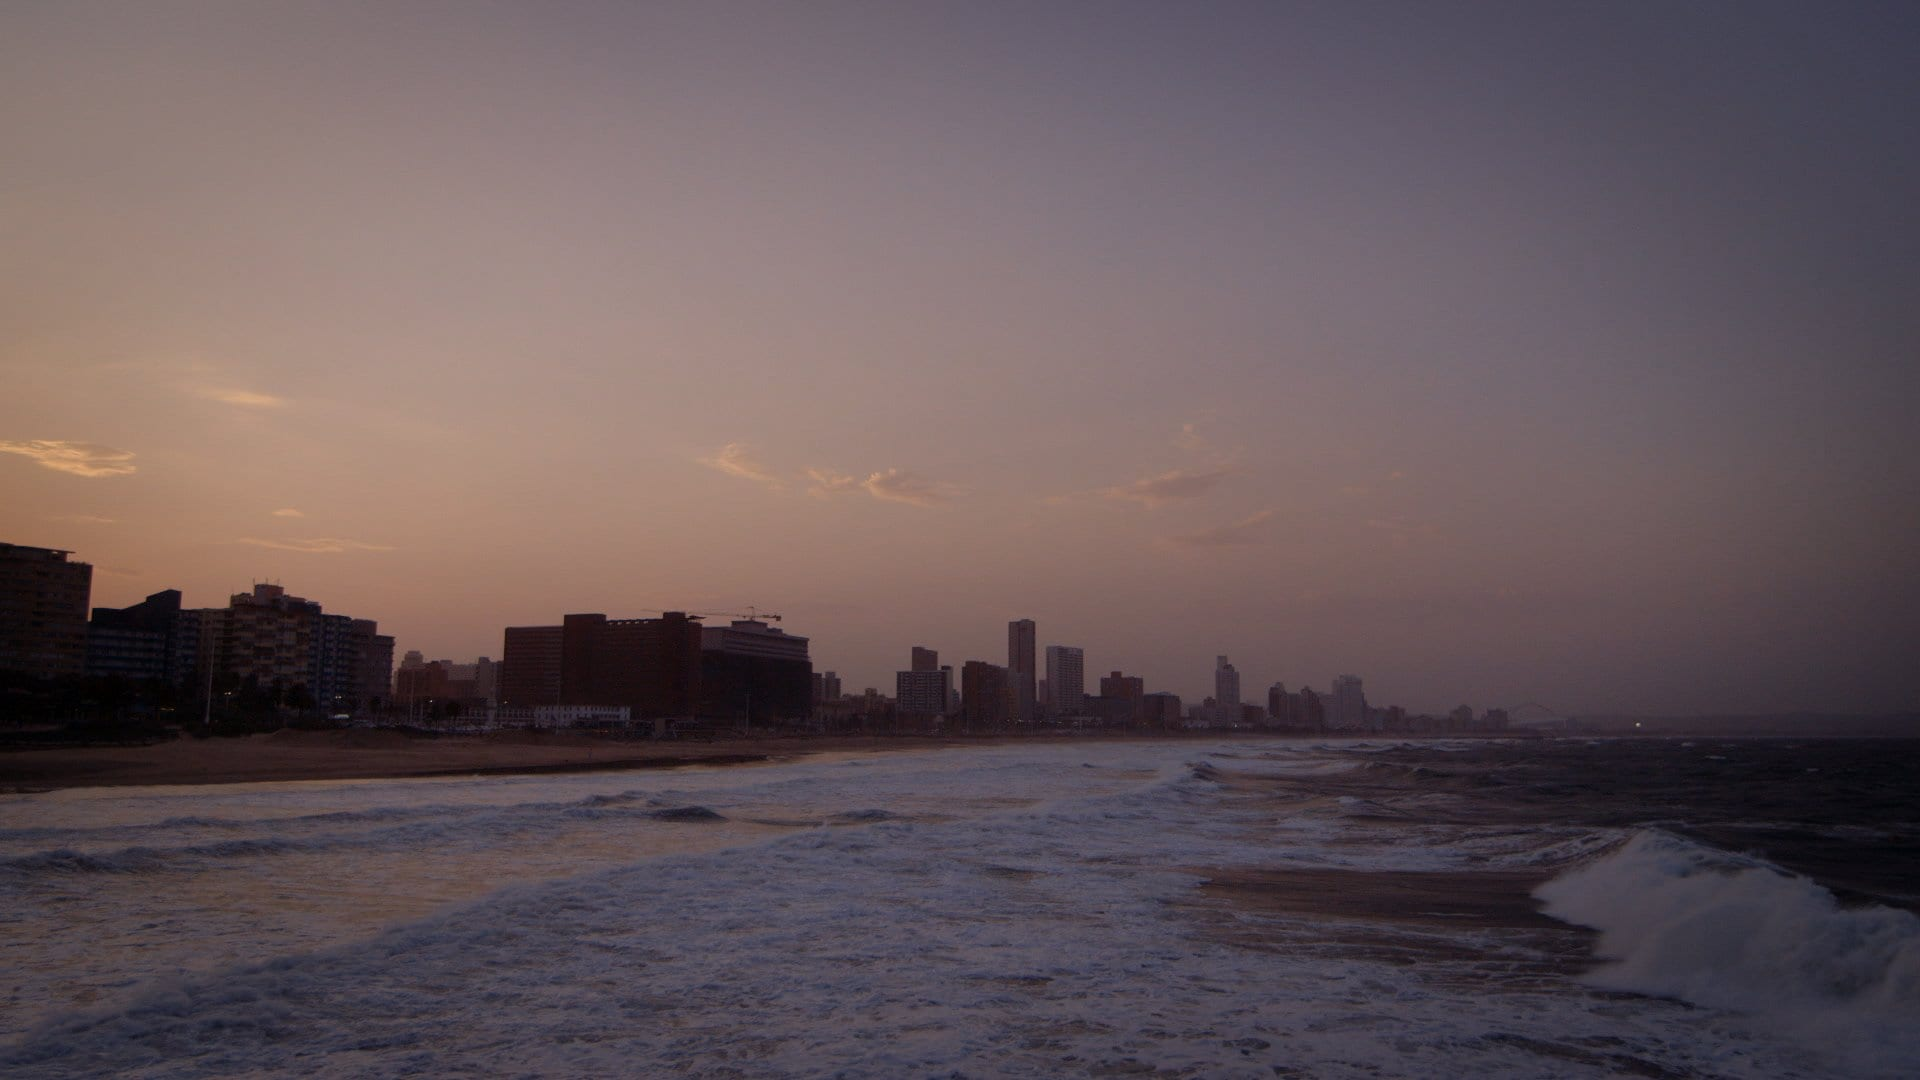 A shot of the skyline in Durban at sunset